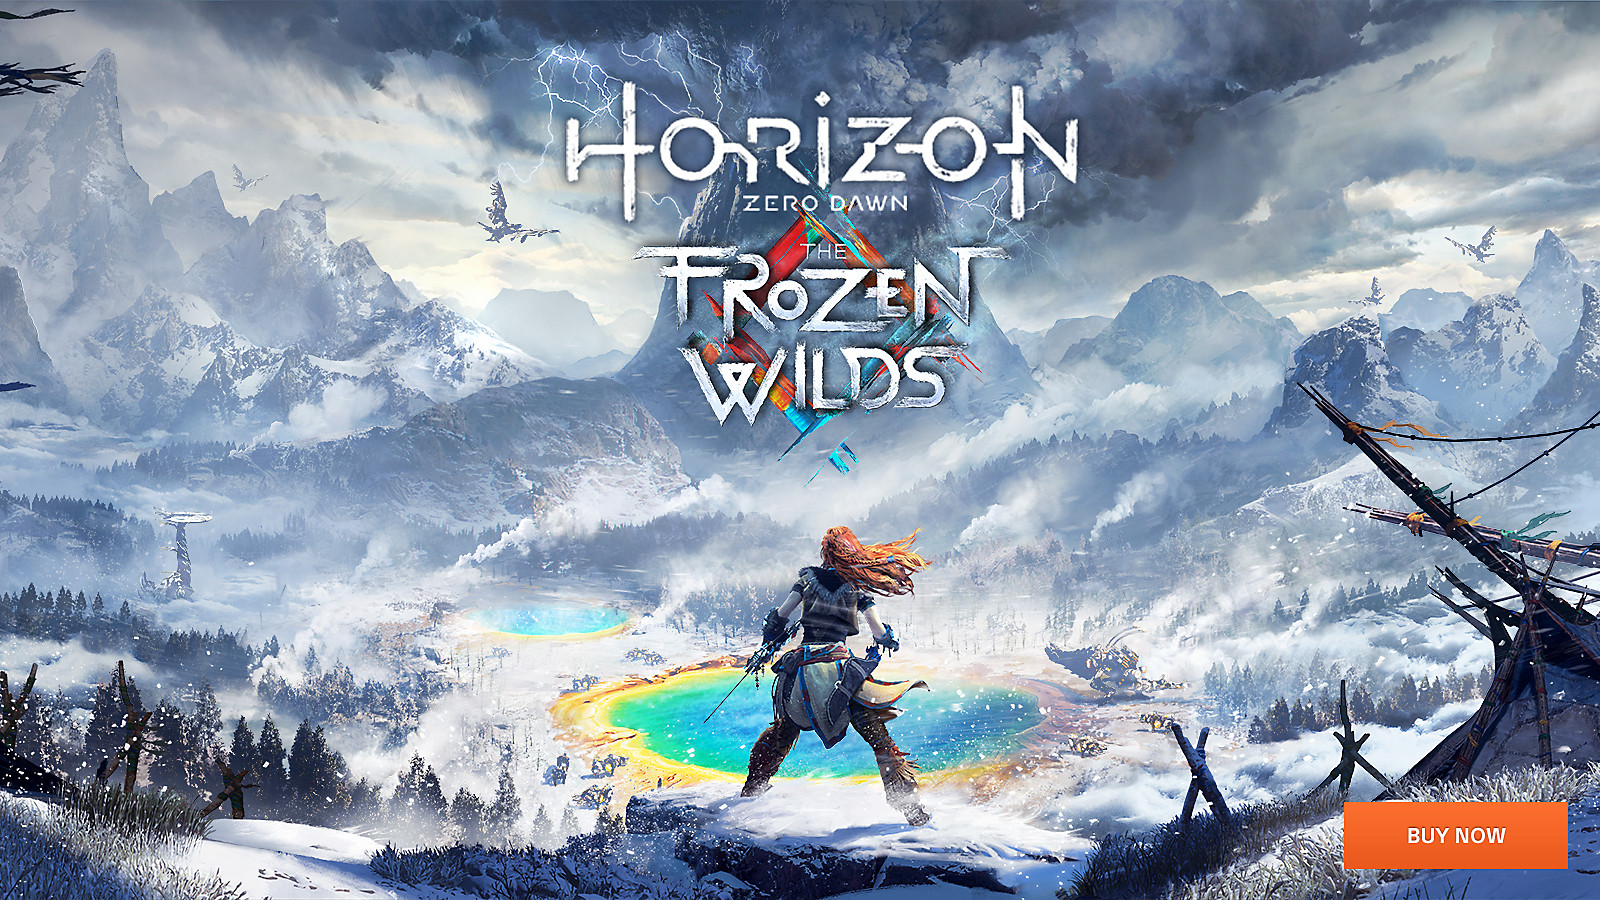 Horizon Zero Dawn: The Frozen Wilds  - PS4 Pro